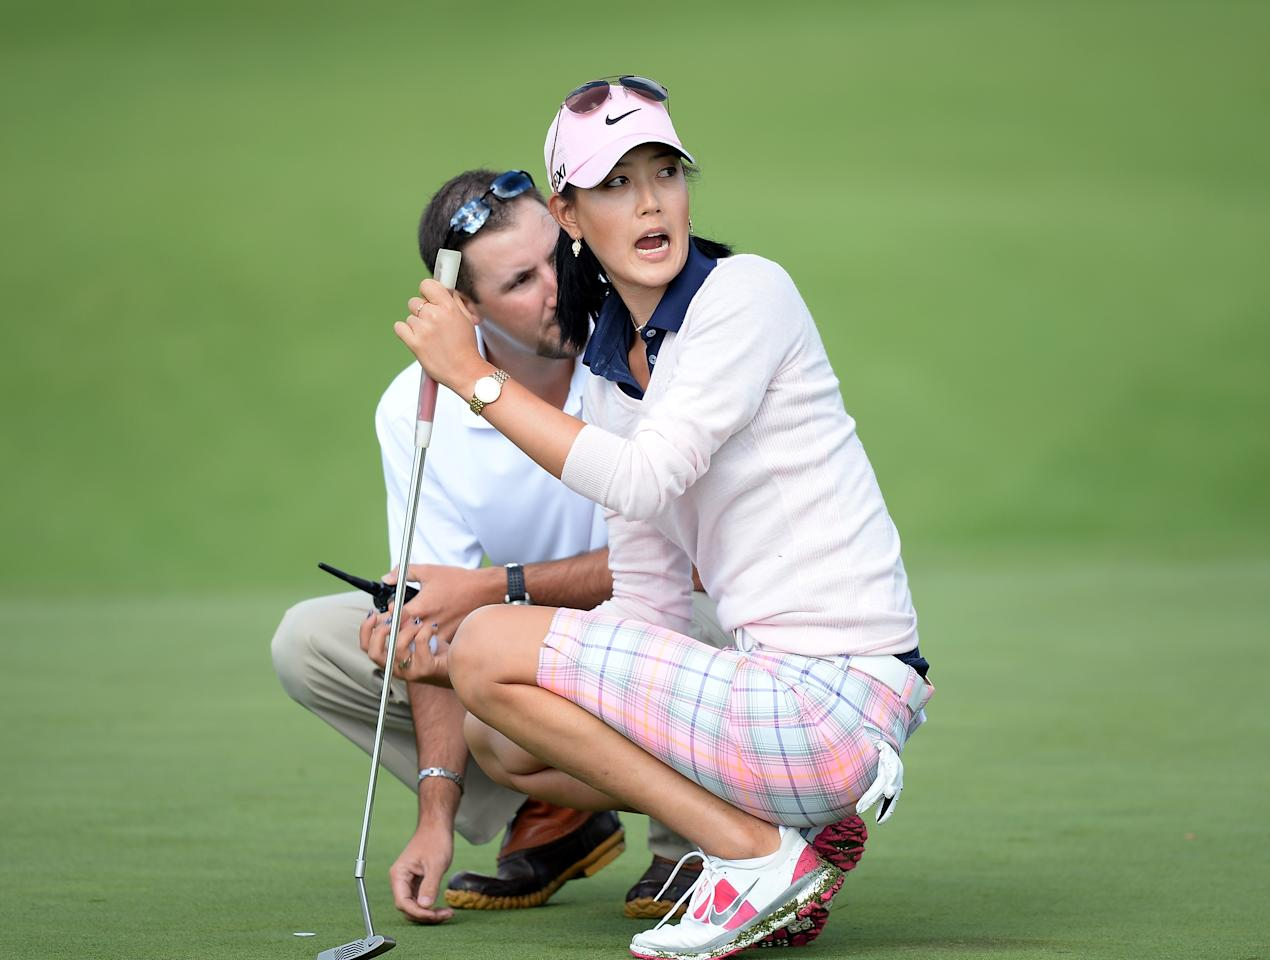 WATERLOO, CANADA - JULY 11: Michelle Wie reacts in front of a rules official on the third green during round one of the Manulife Financial LPGA Classic at the Grey Silo Golf Course on July 11, 2013 in Waterloo, Canada. (Photo by Harry How/Getty Images)